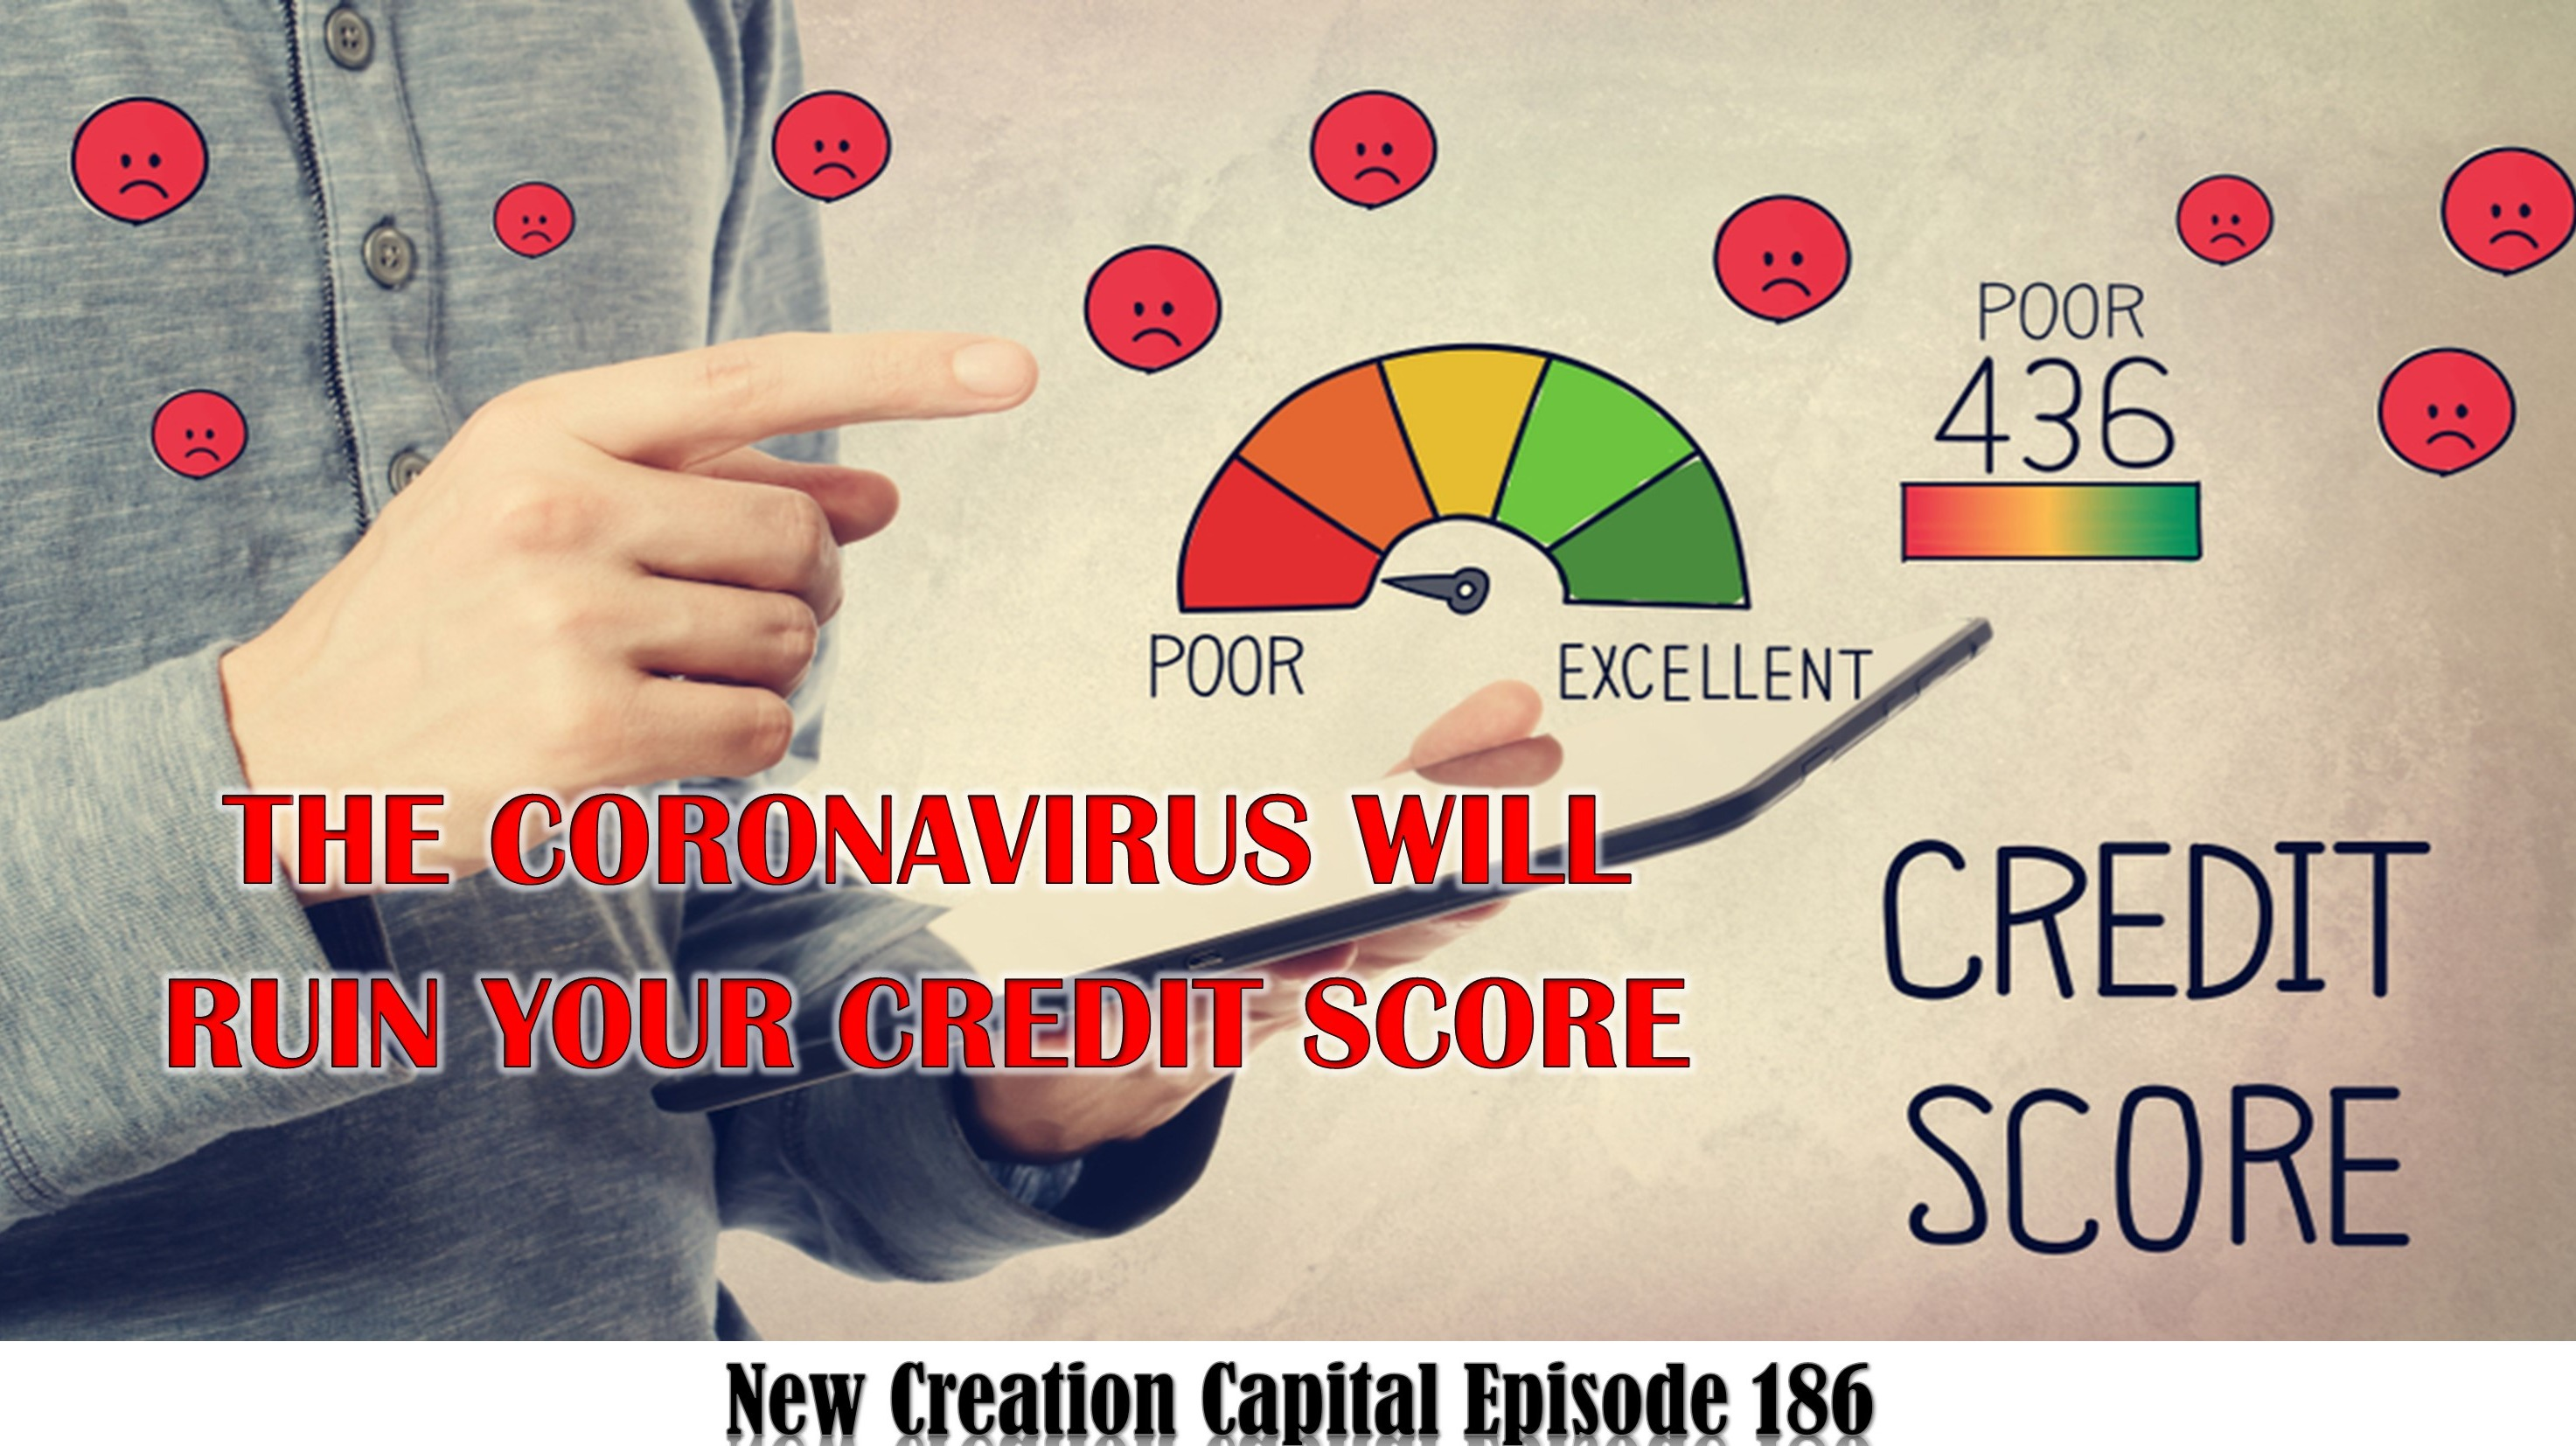 Episode 186: 💲 Is COVID-19 Ruining Your Credit Score? 🛑